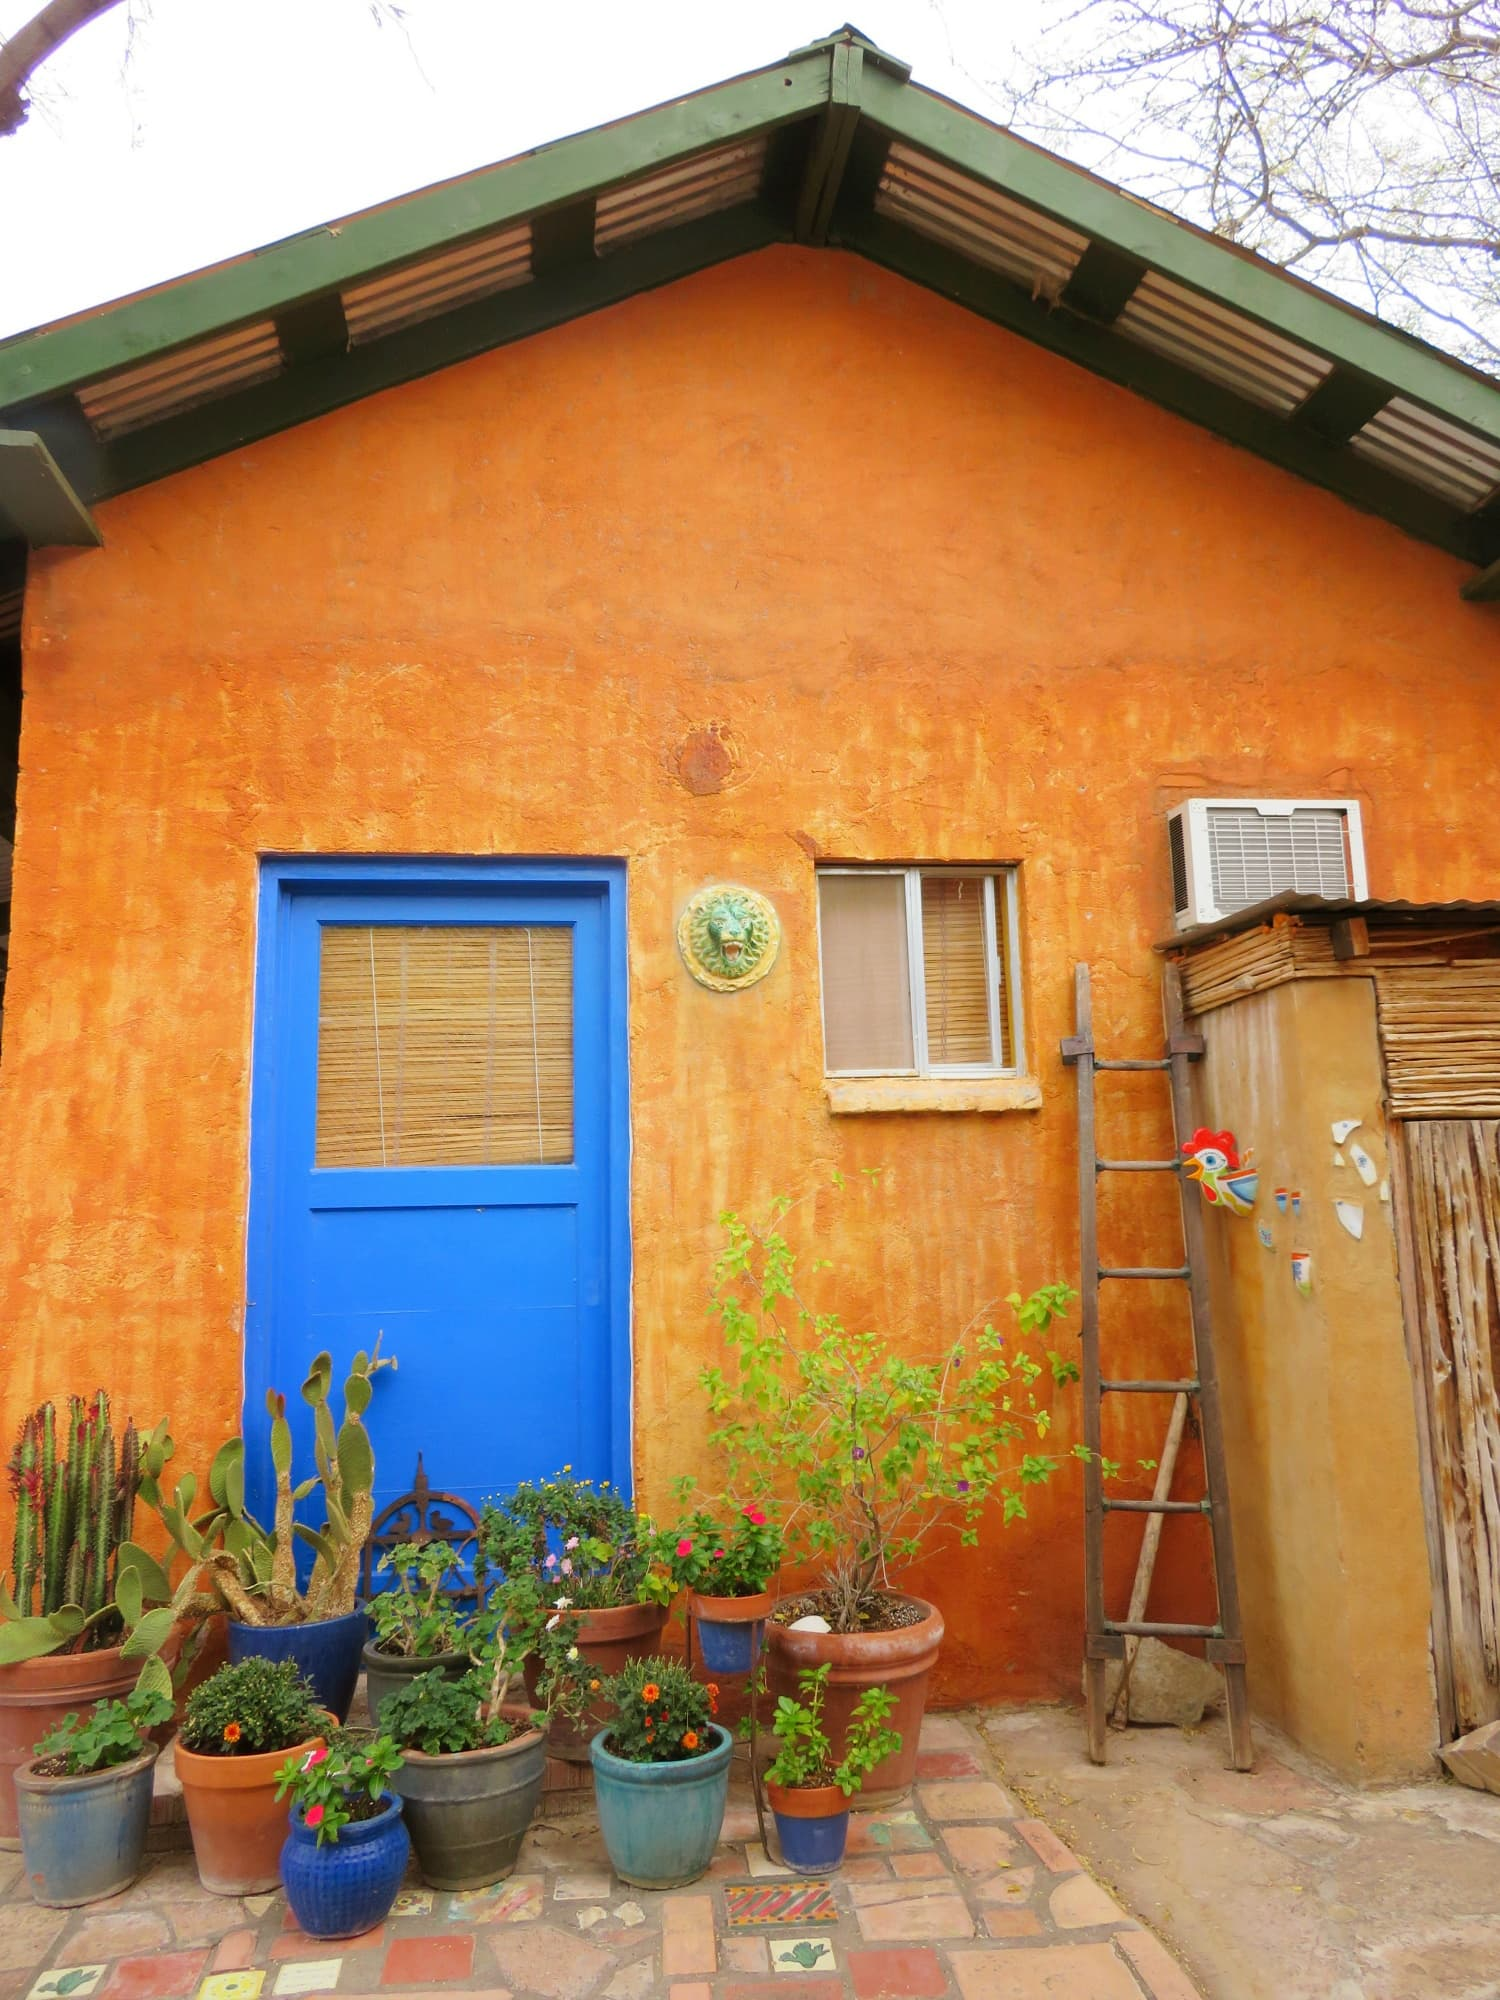 The aptly named Blue Door Casita is just the right size for a romantic getaway at Aravaipa Farms Inn